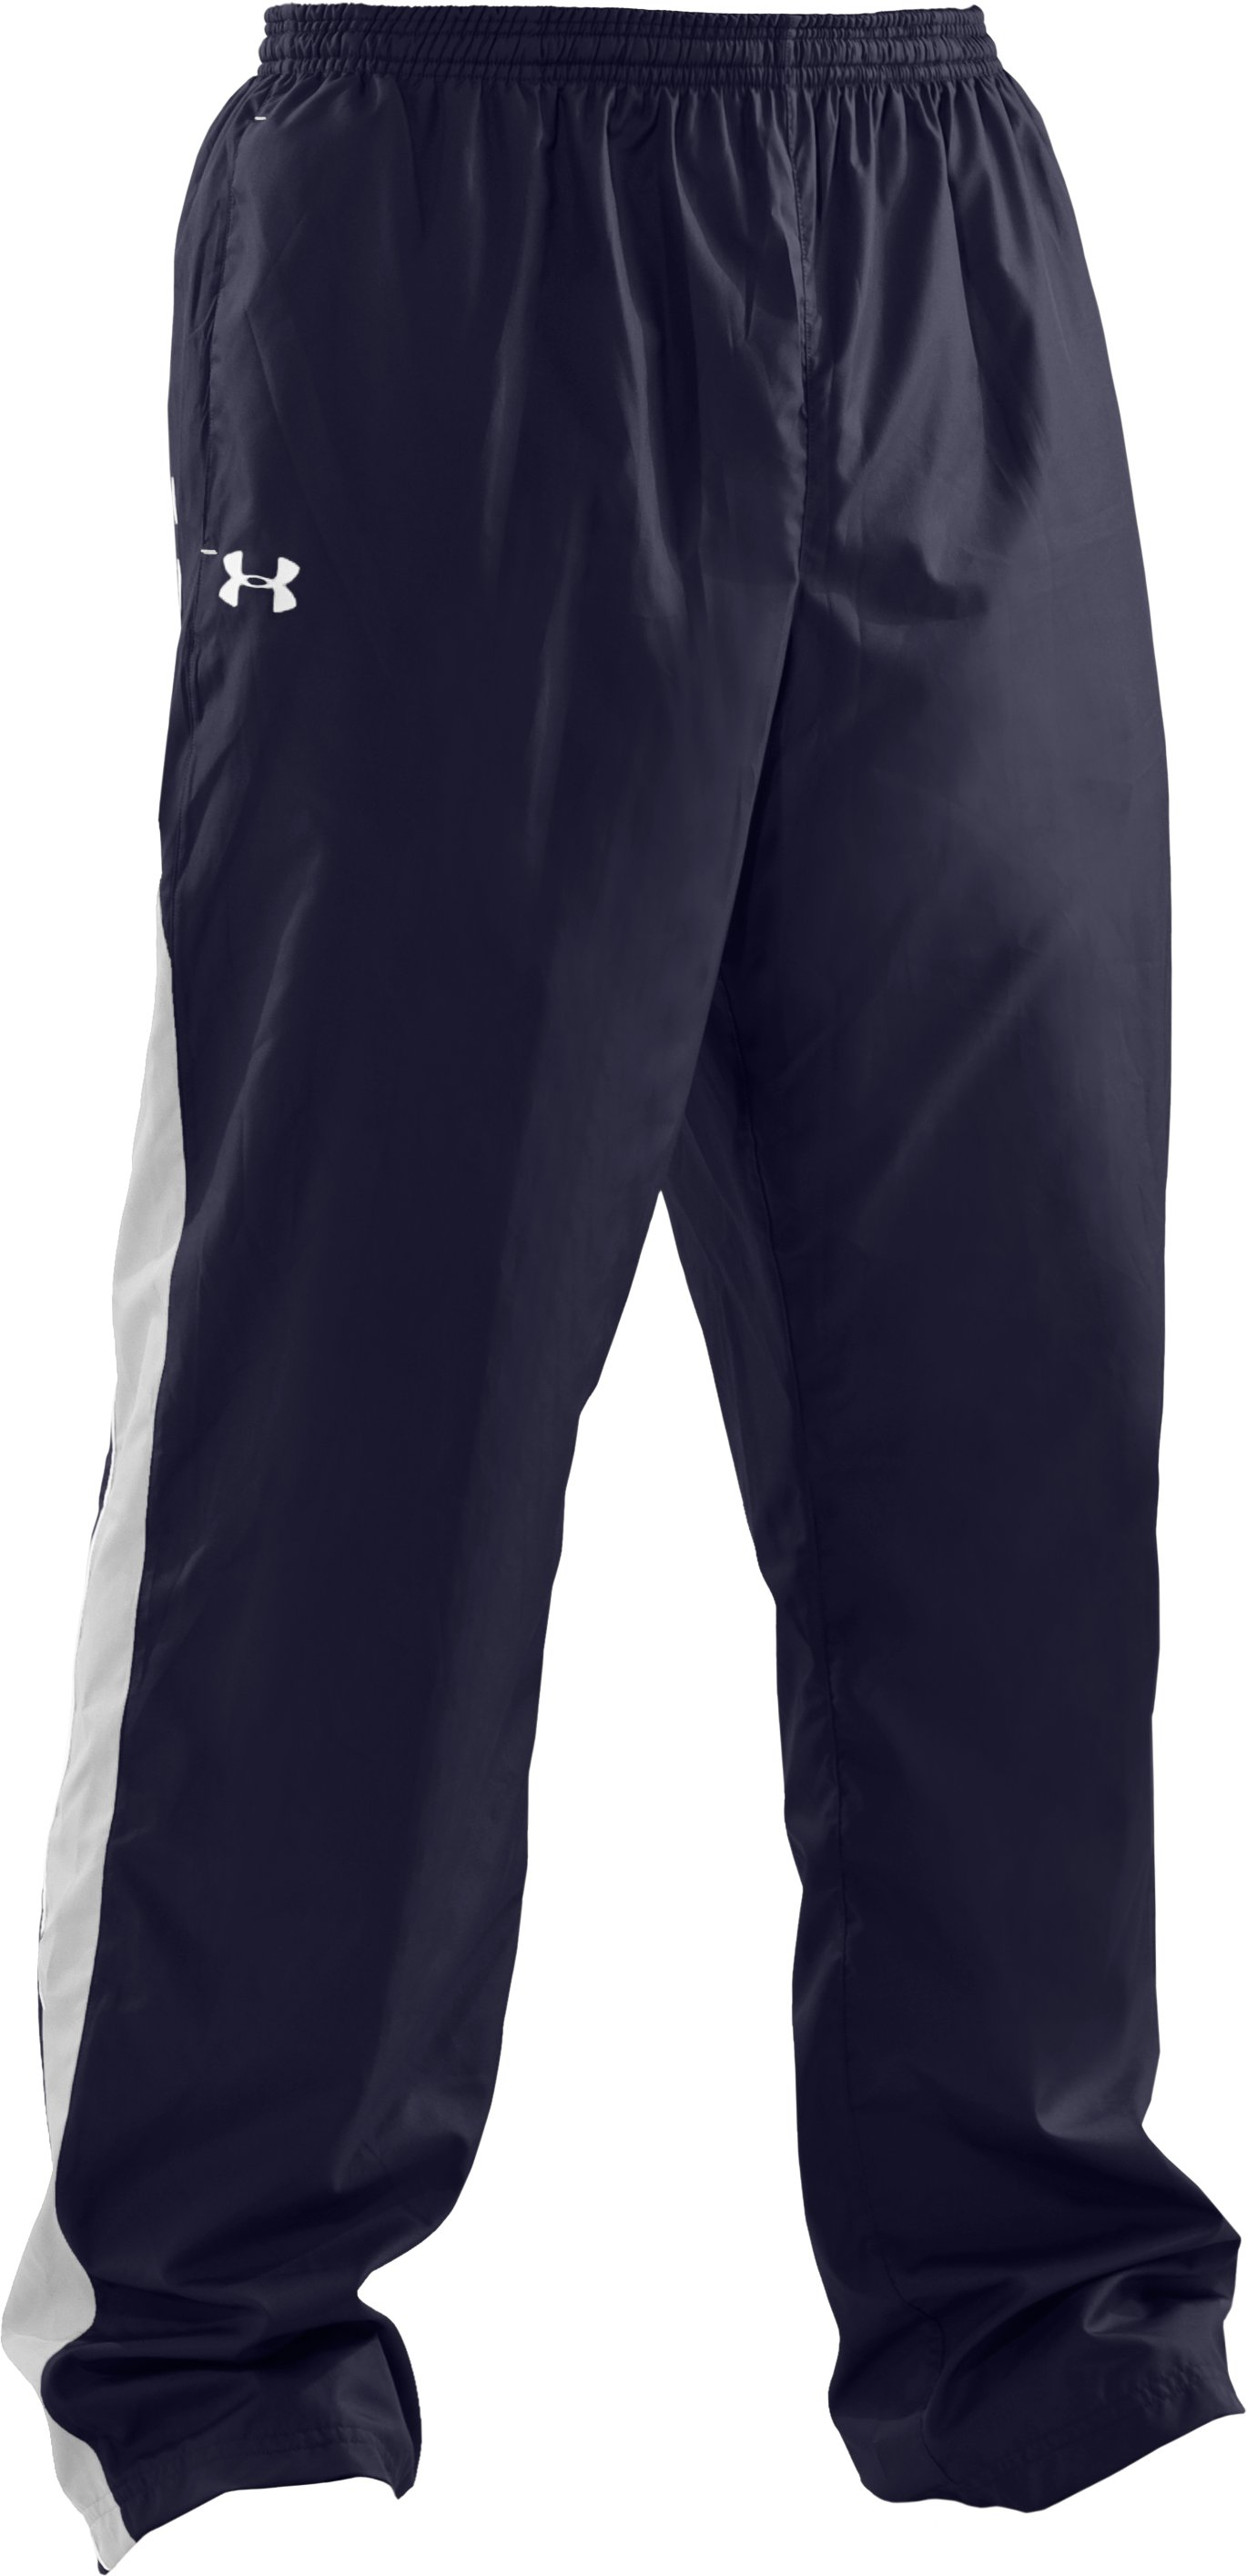 Men's UA Attack Woven Warm-Up Pants, Midnight Navy